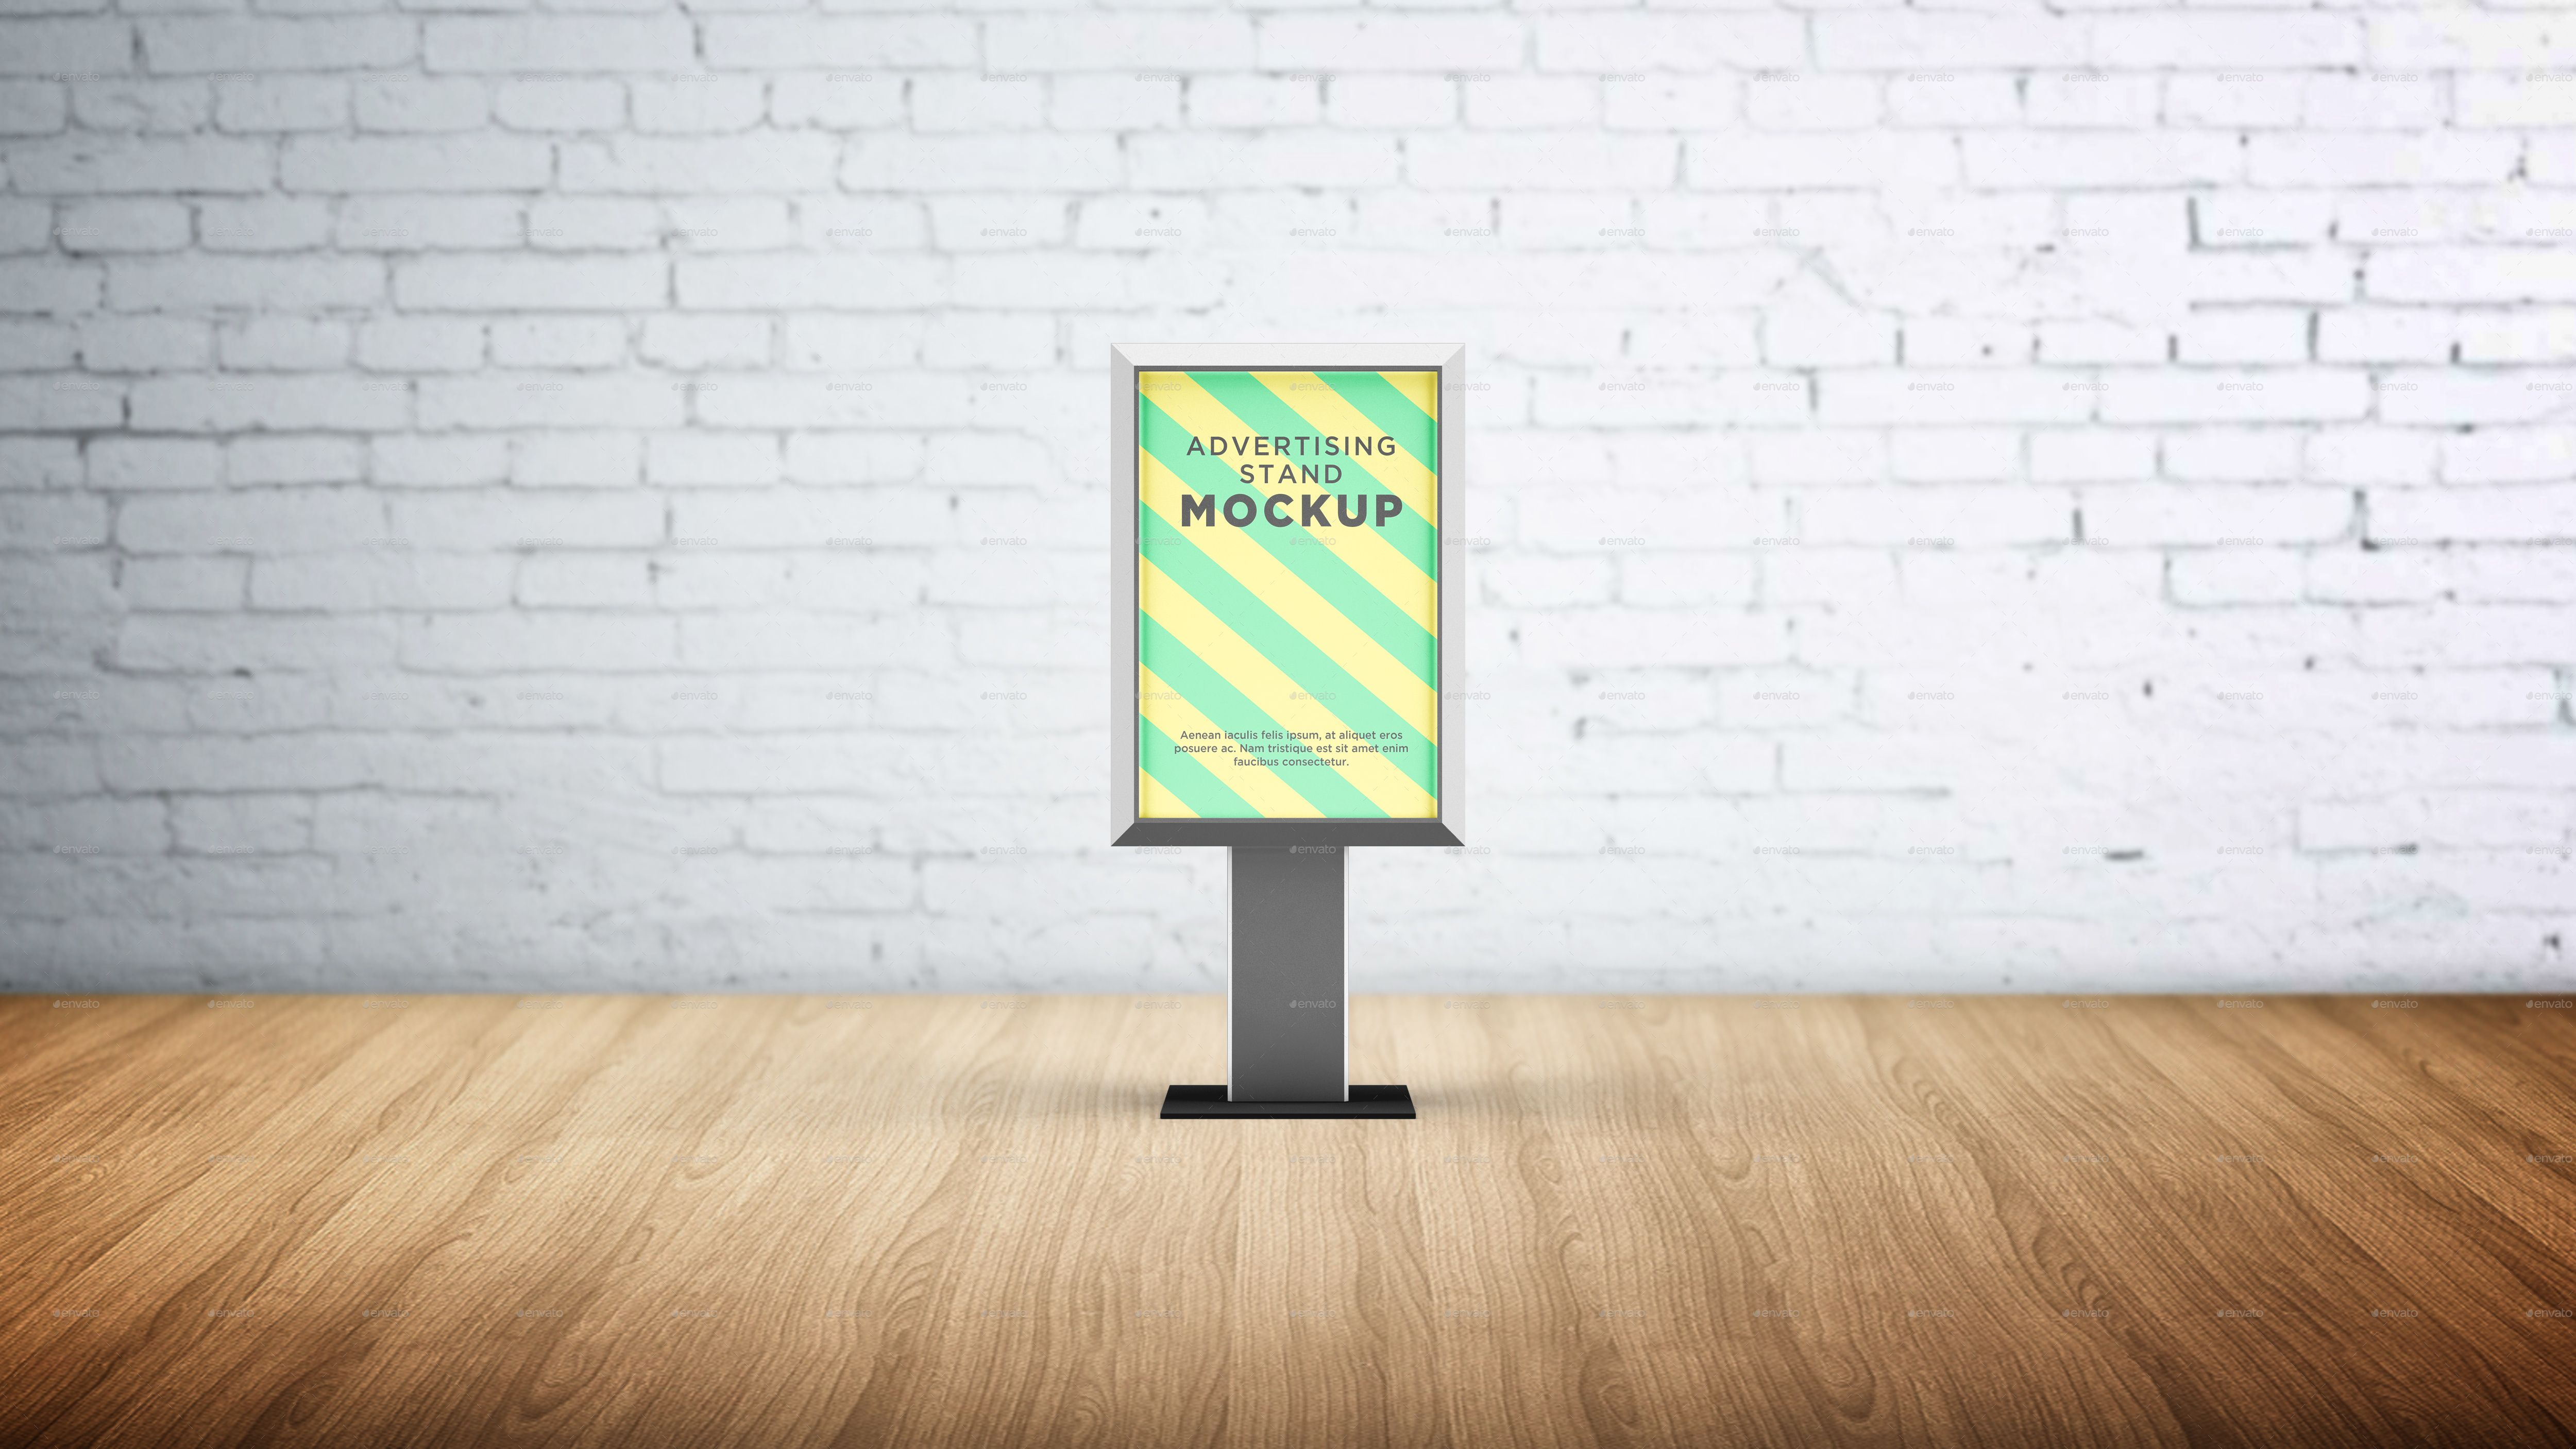 vertical advertising stand mockup